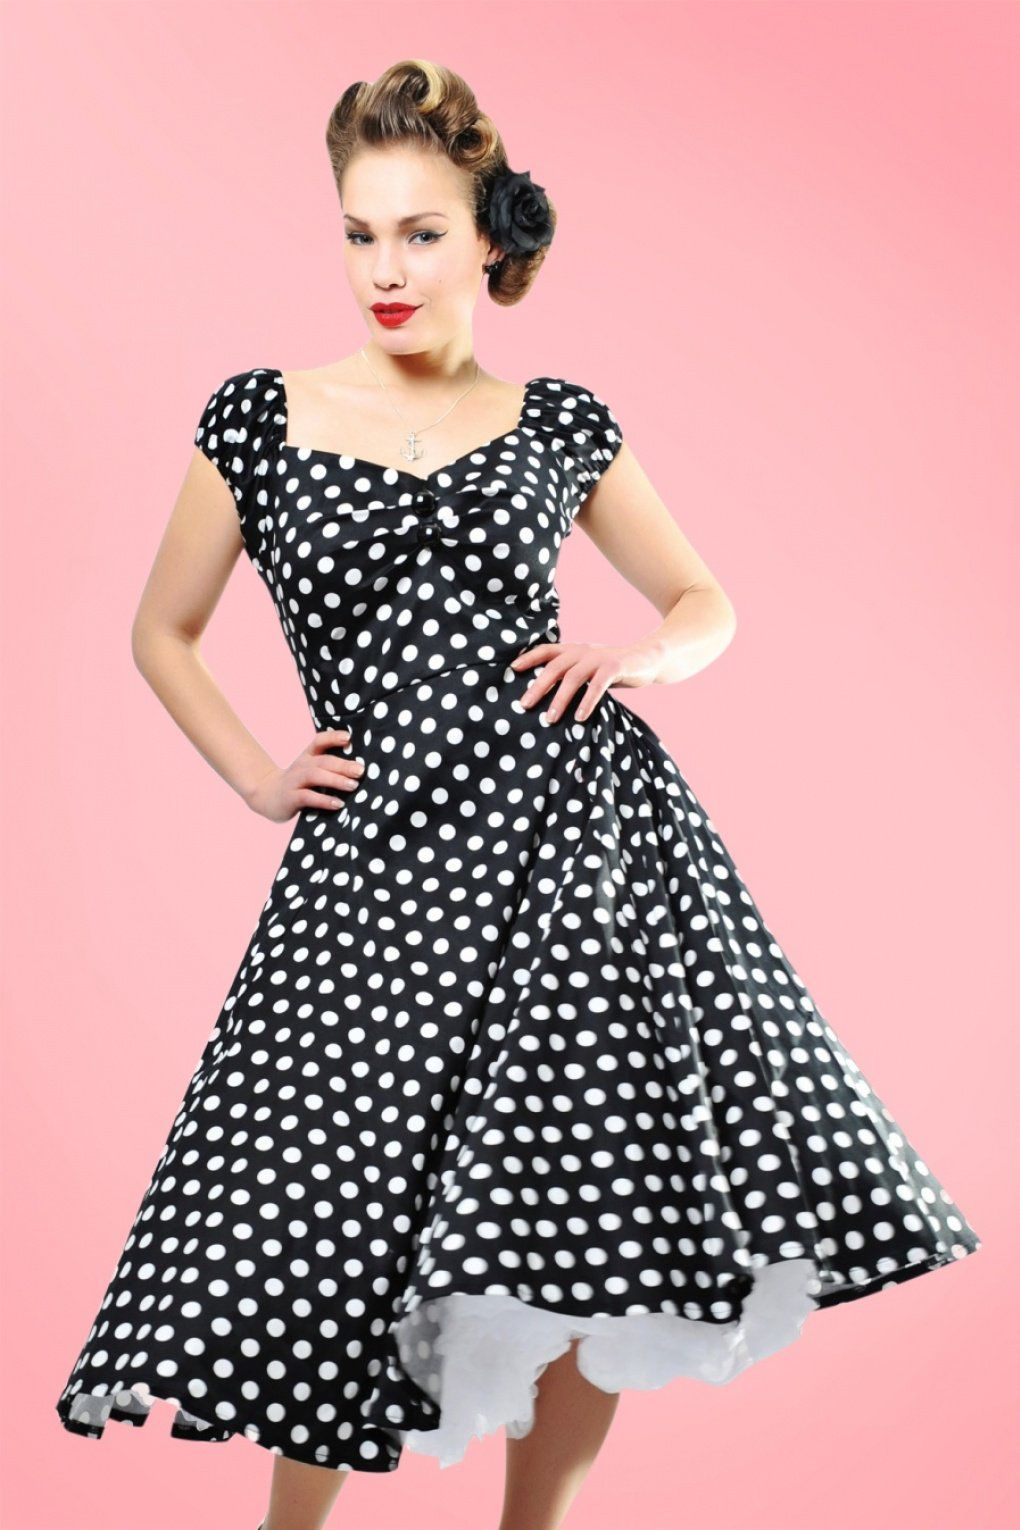 48d9a4c9e1d2 500 Vintage Style Dresses for Sale 50s Dolores Doll dress Black White polka swing  dress £61.54 AT vintagedancer.com